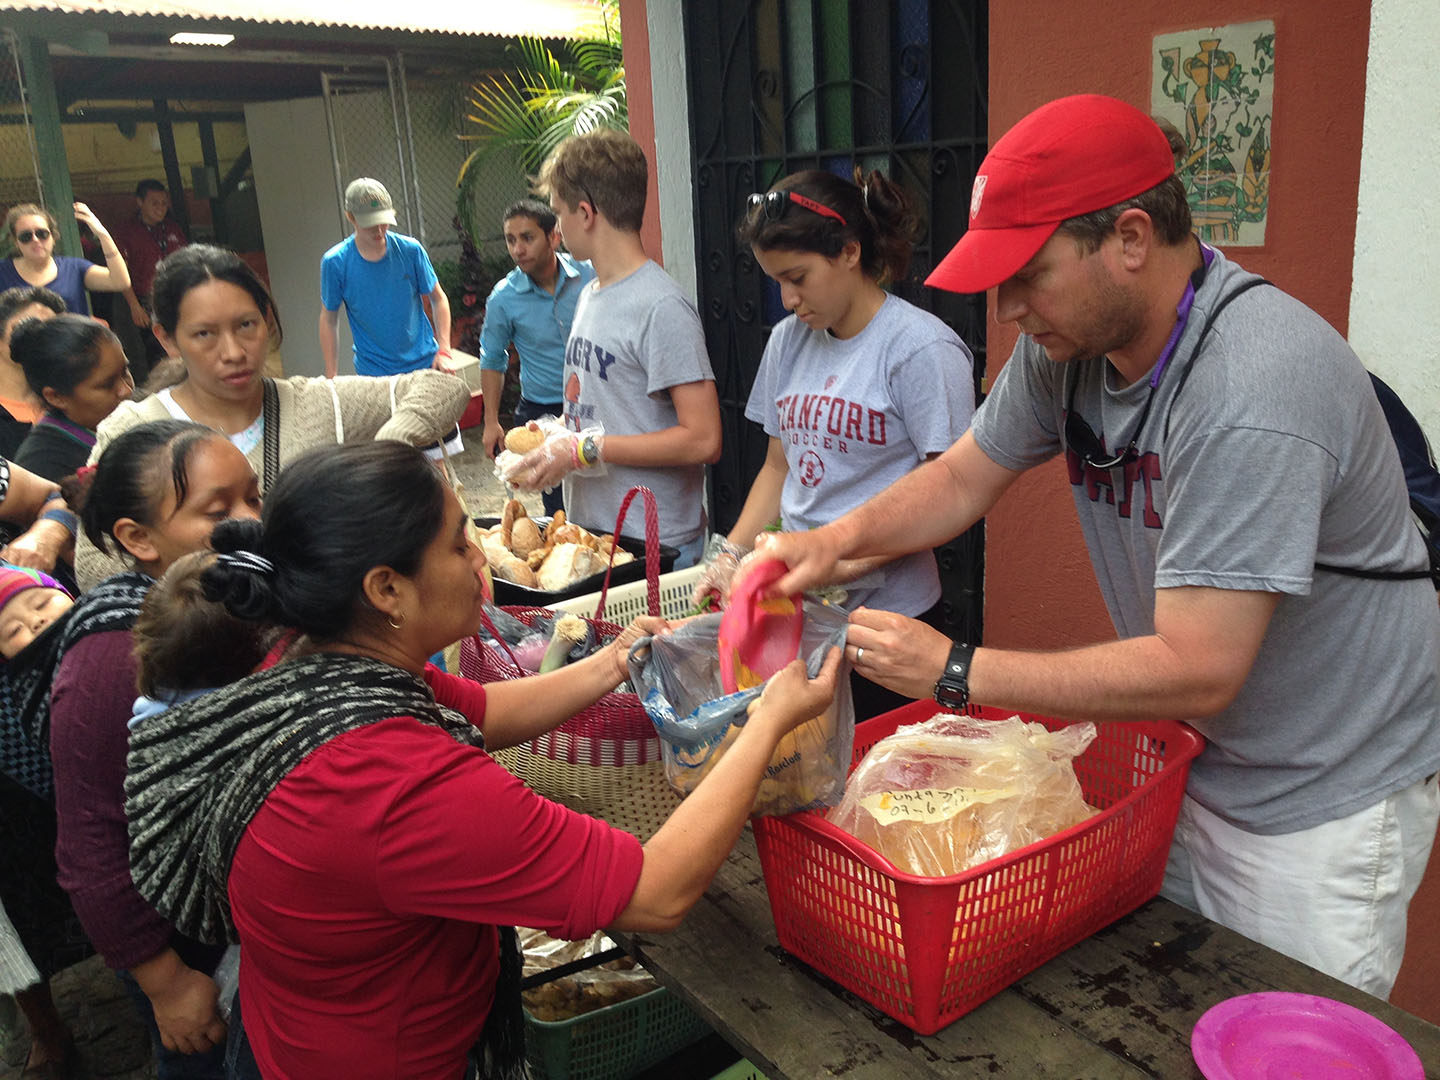 Spanish teacher Jon Bender and Taft students help out with food donations.